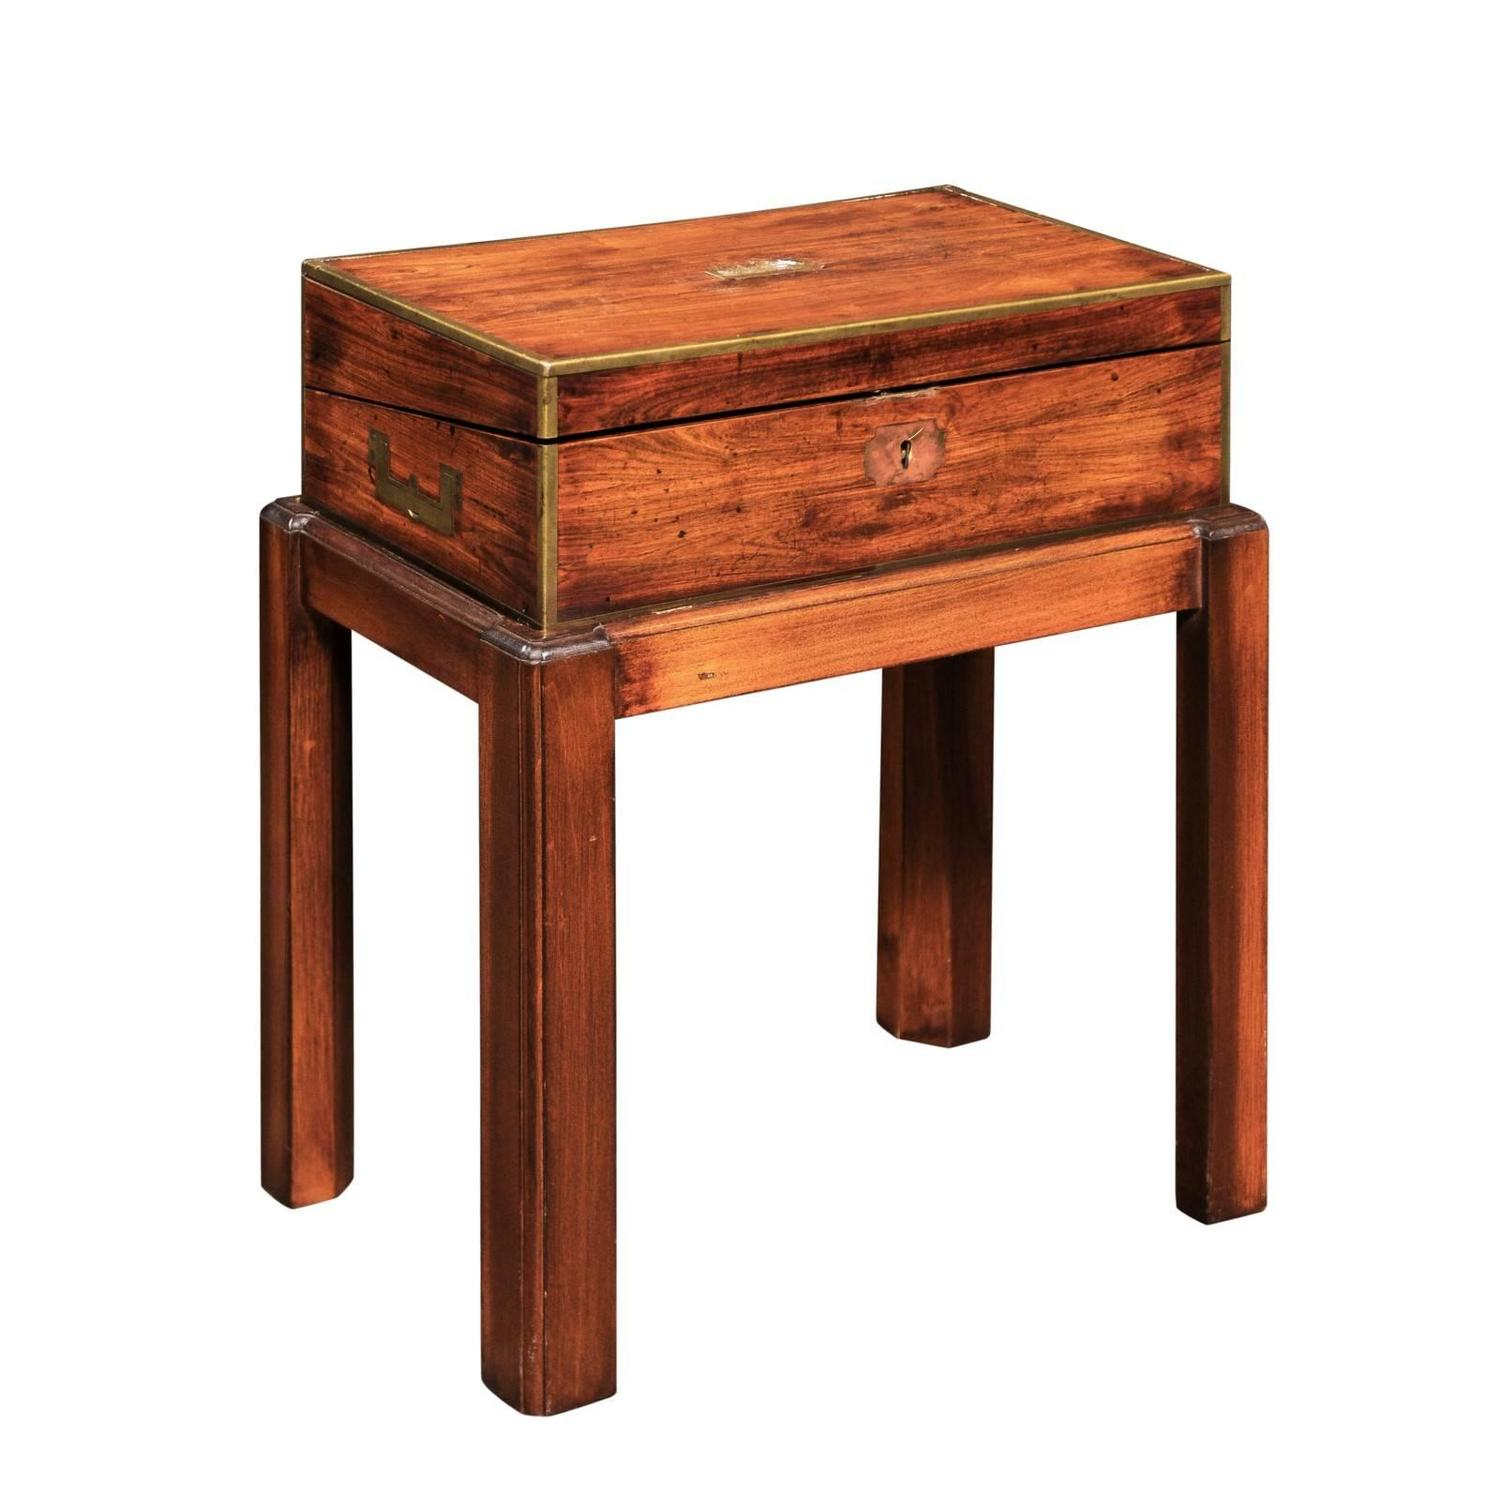 Genial English Campaign Mahogany Lap Desk Decorative Box On Custom Stand, Circa  1860